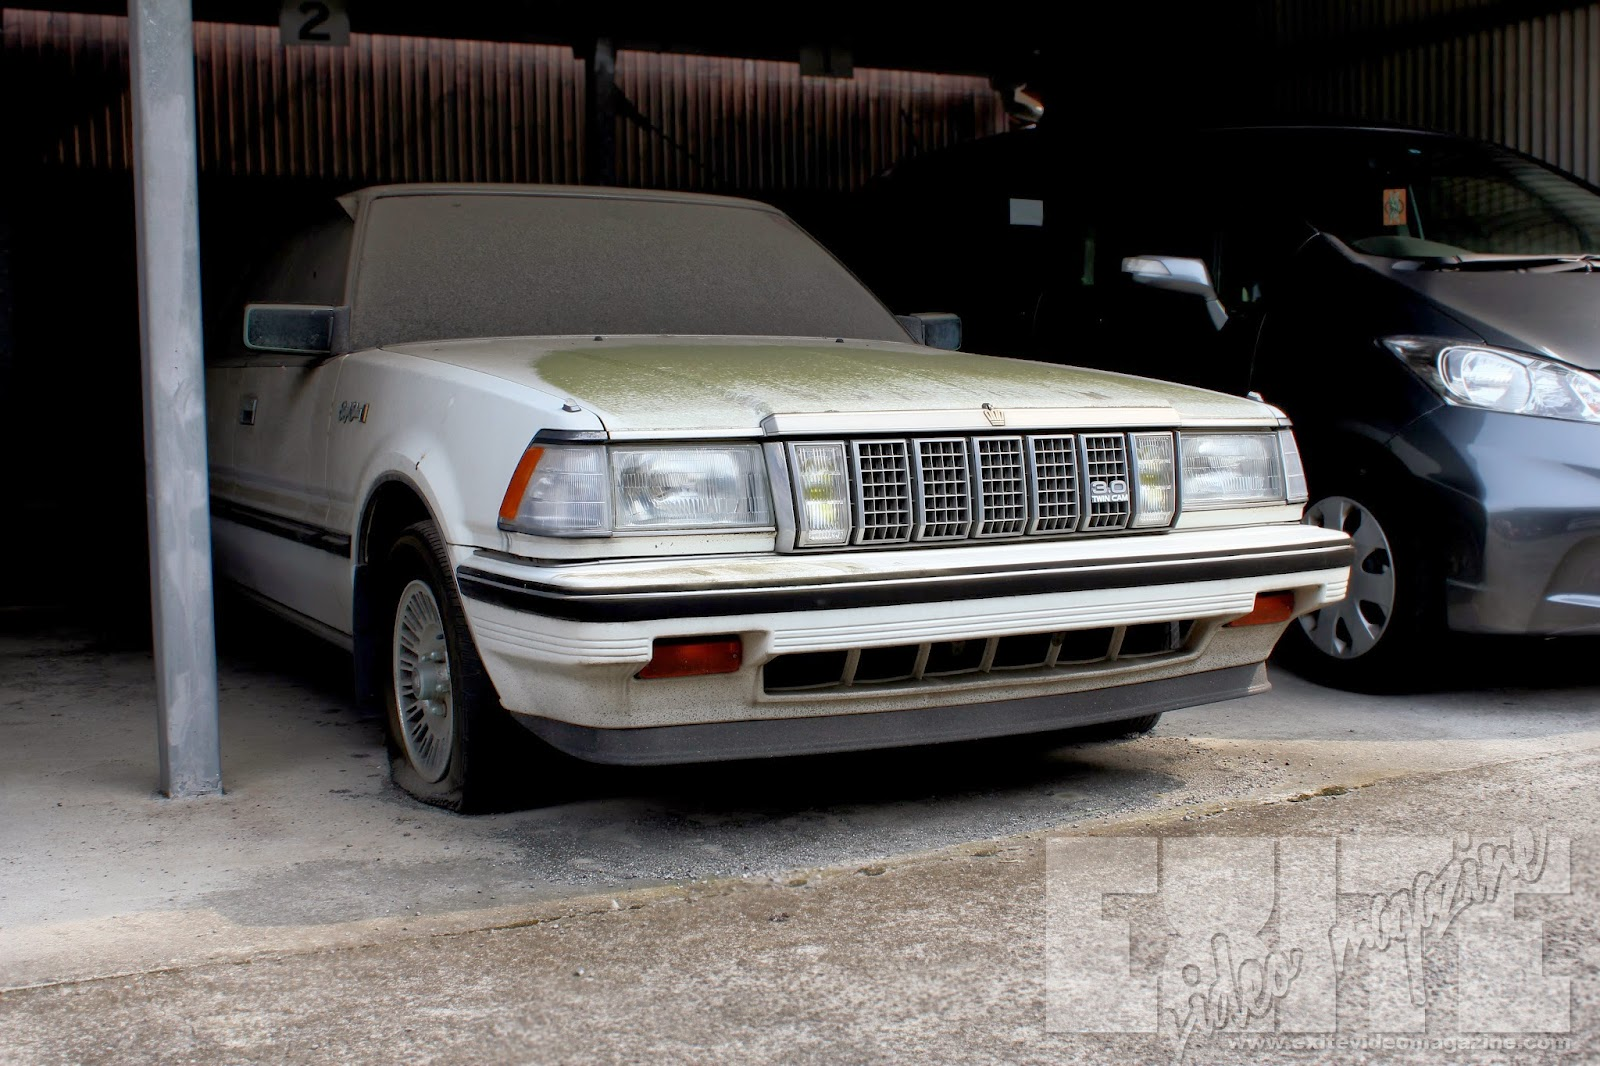 Toyota Crown 2014 >> Abandoned Toyota Crown in Usa, Oita. A VERY interesting story on this one. | eXite Video Magazine